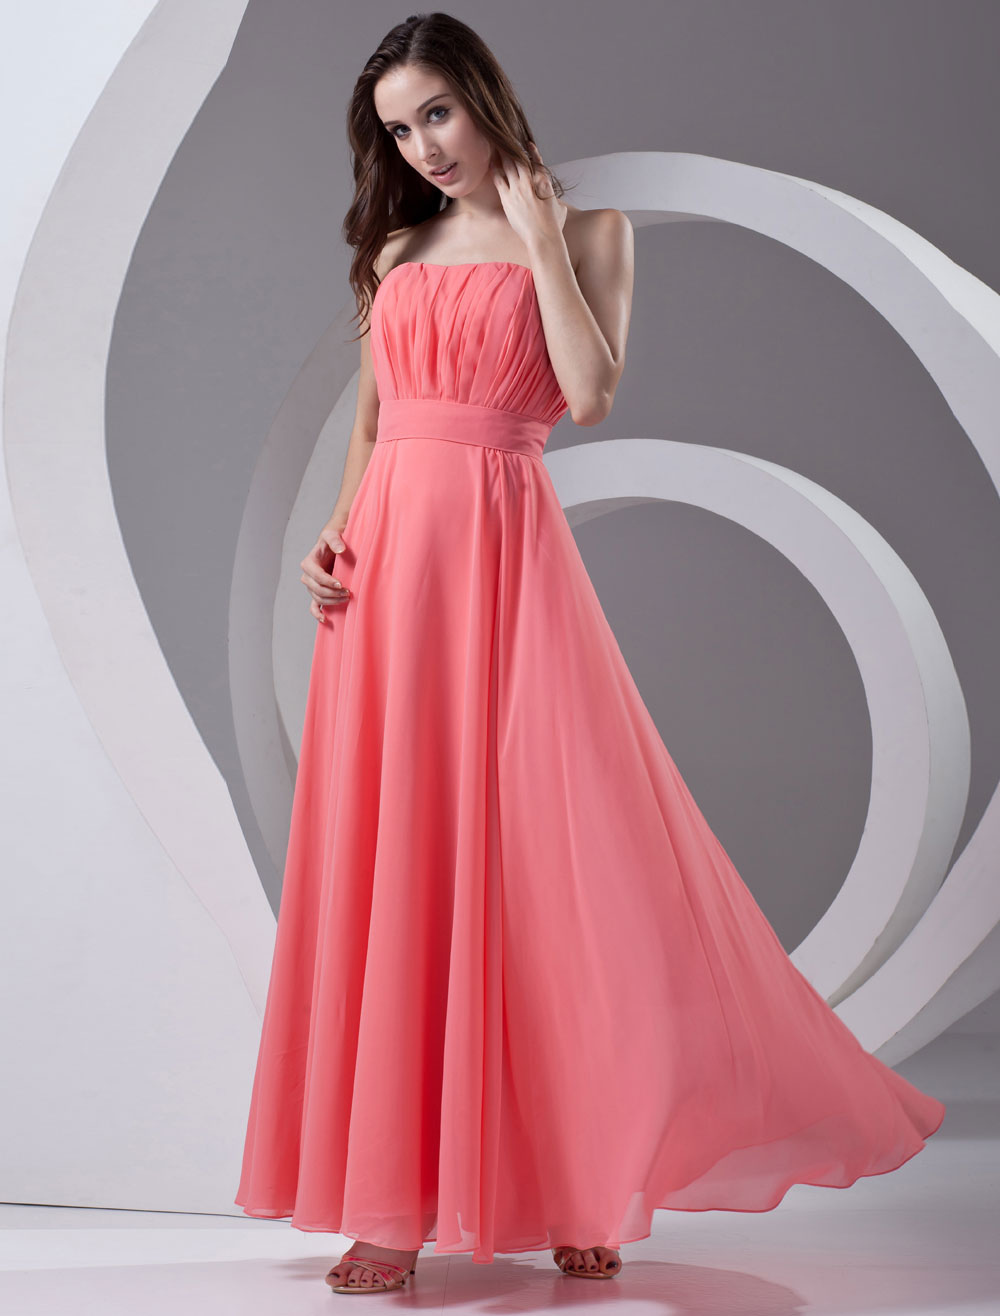 Empire Waist Pink Chiffon Ruched Strapless Bridesmaid Dress For Wedding